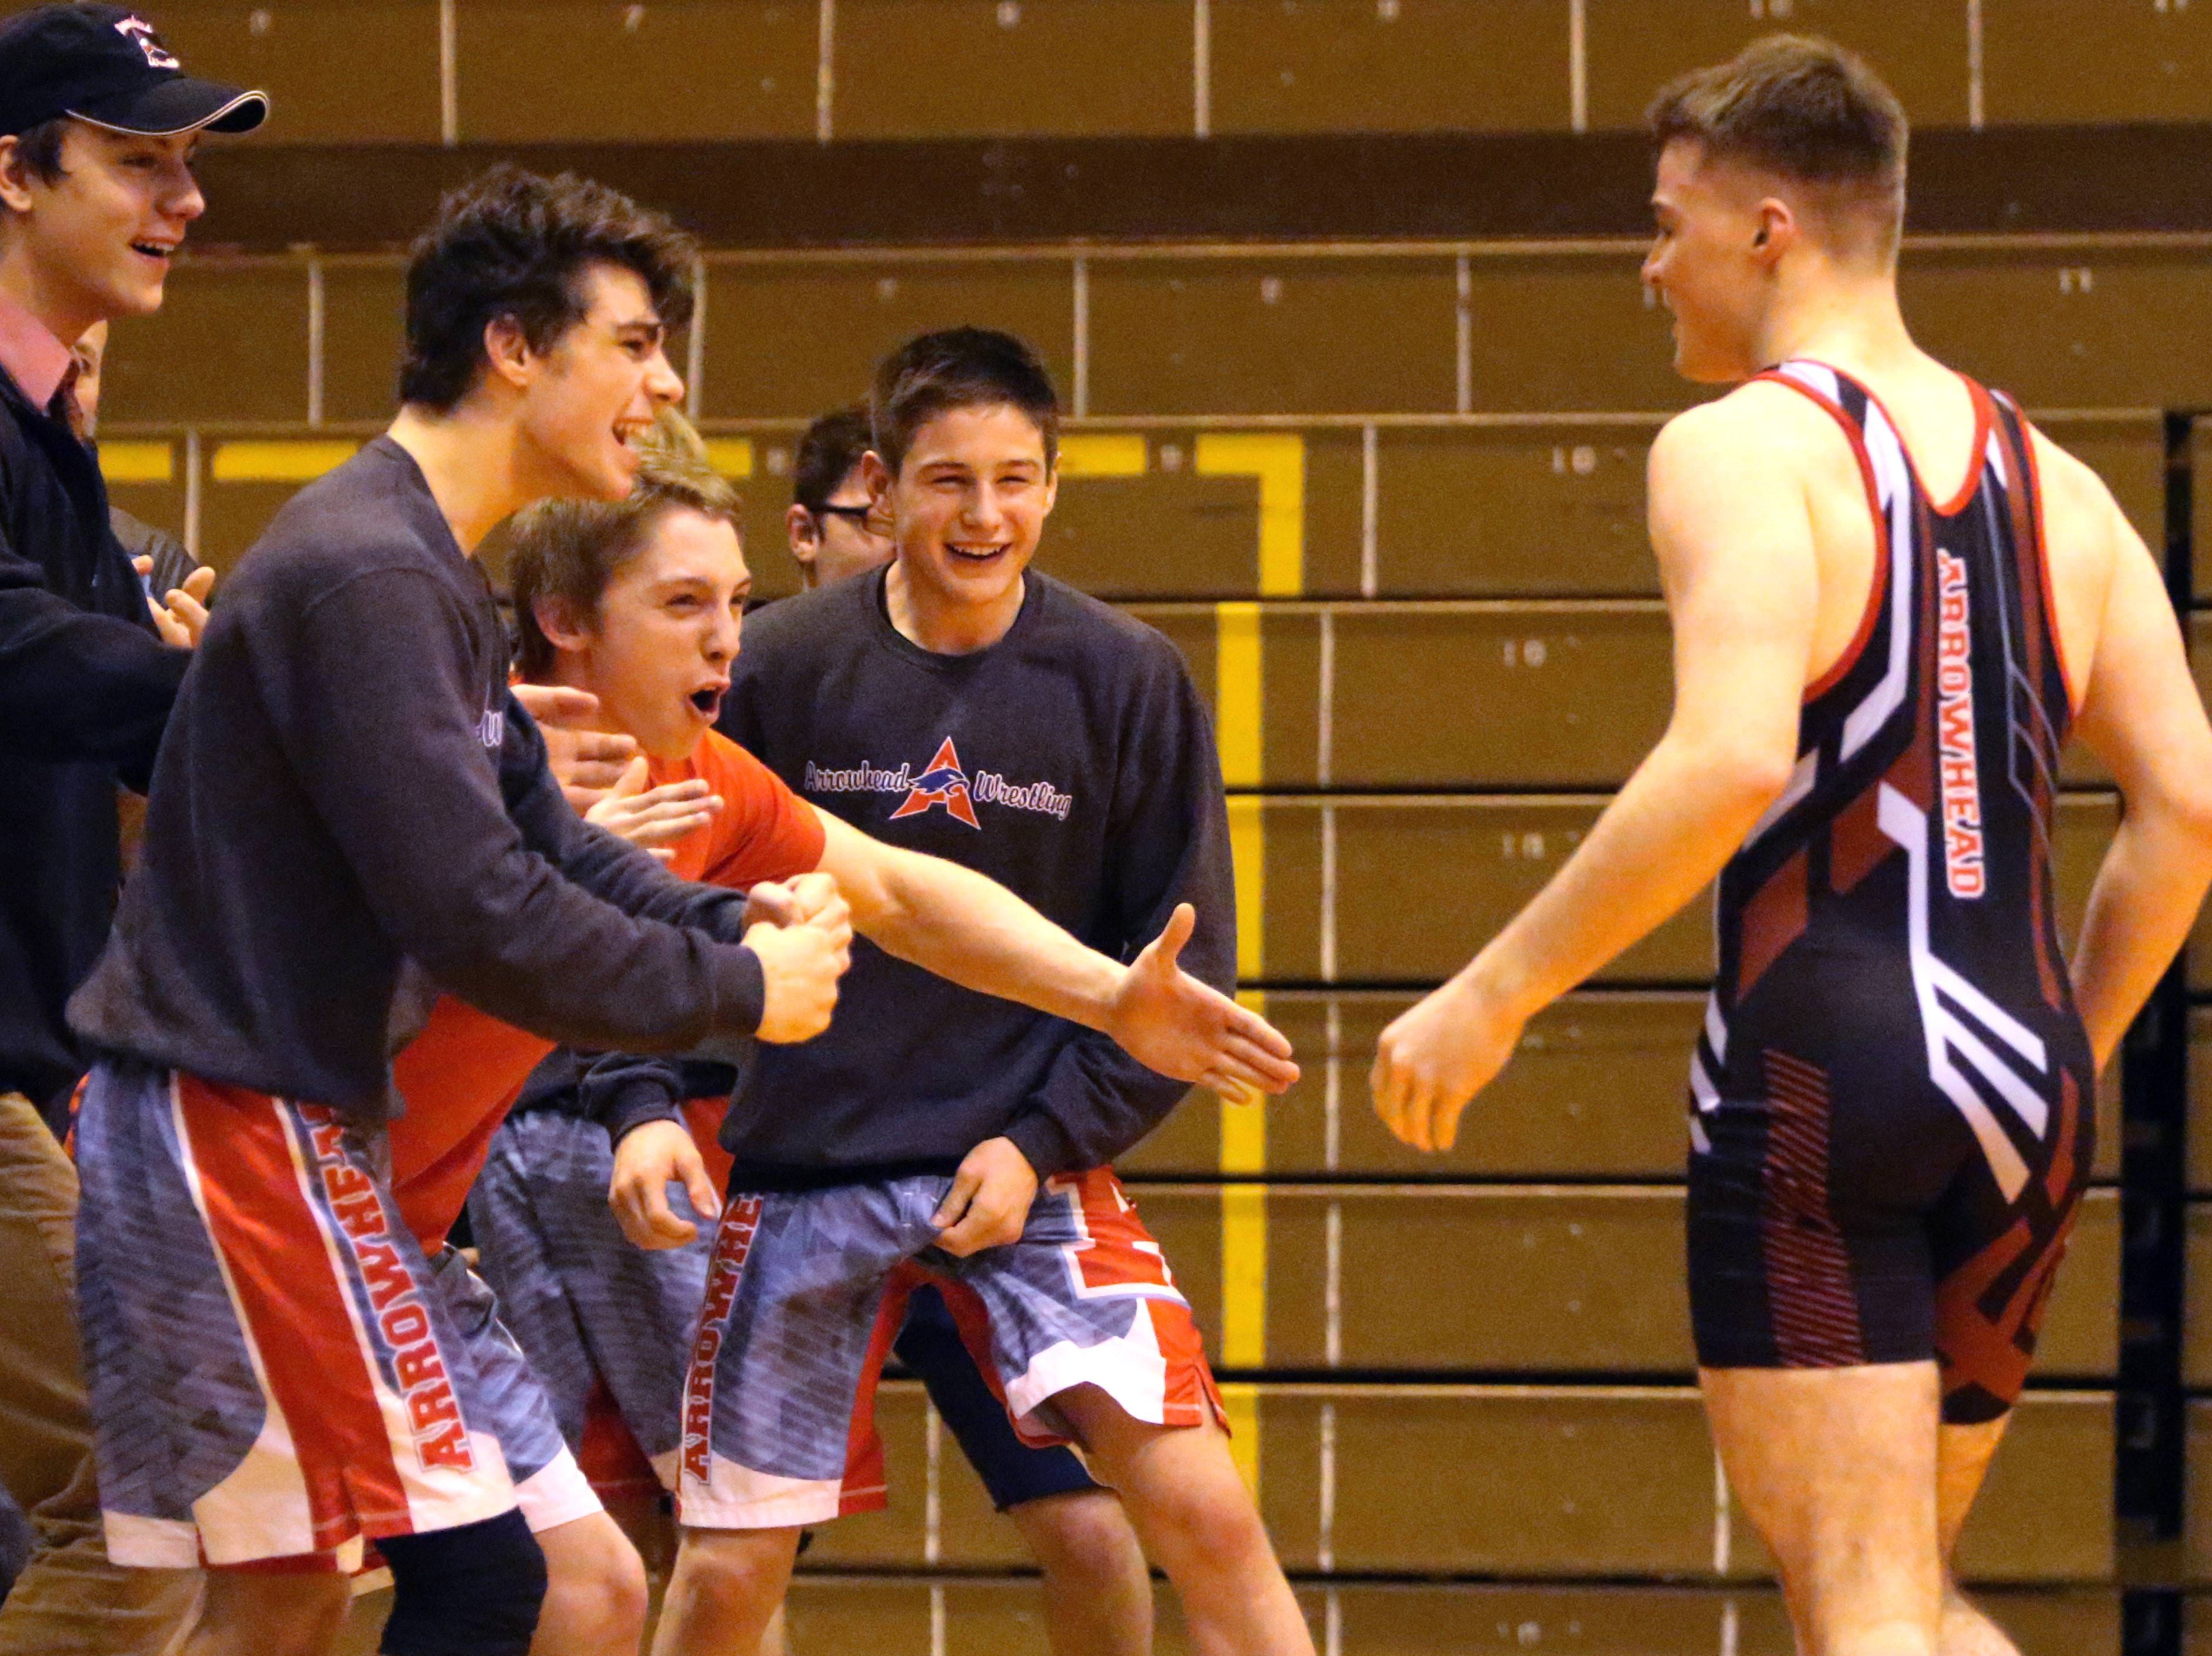 Arrowhead teammates congratulate Noah Ross (right) after his pin in the final match during a WIAA sectional final on Feb. 14, 2019 sent the Warhawks to the WIAA state team meet.